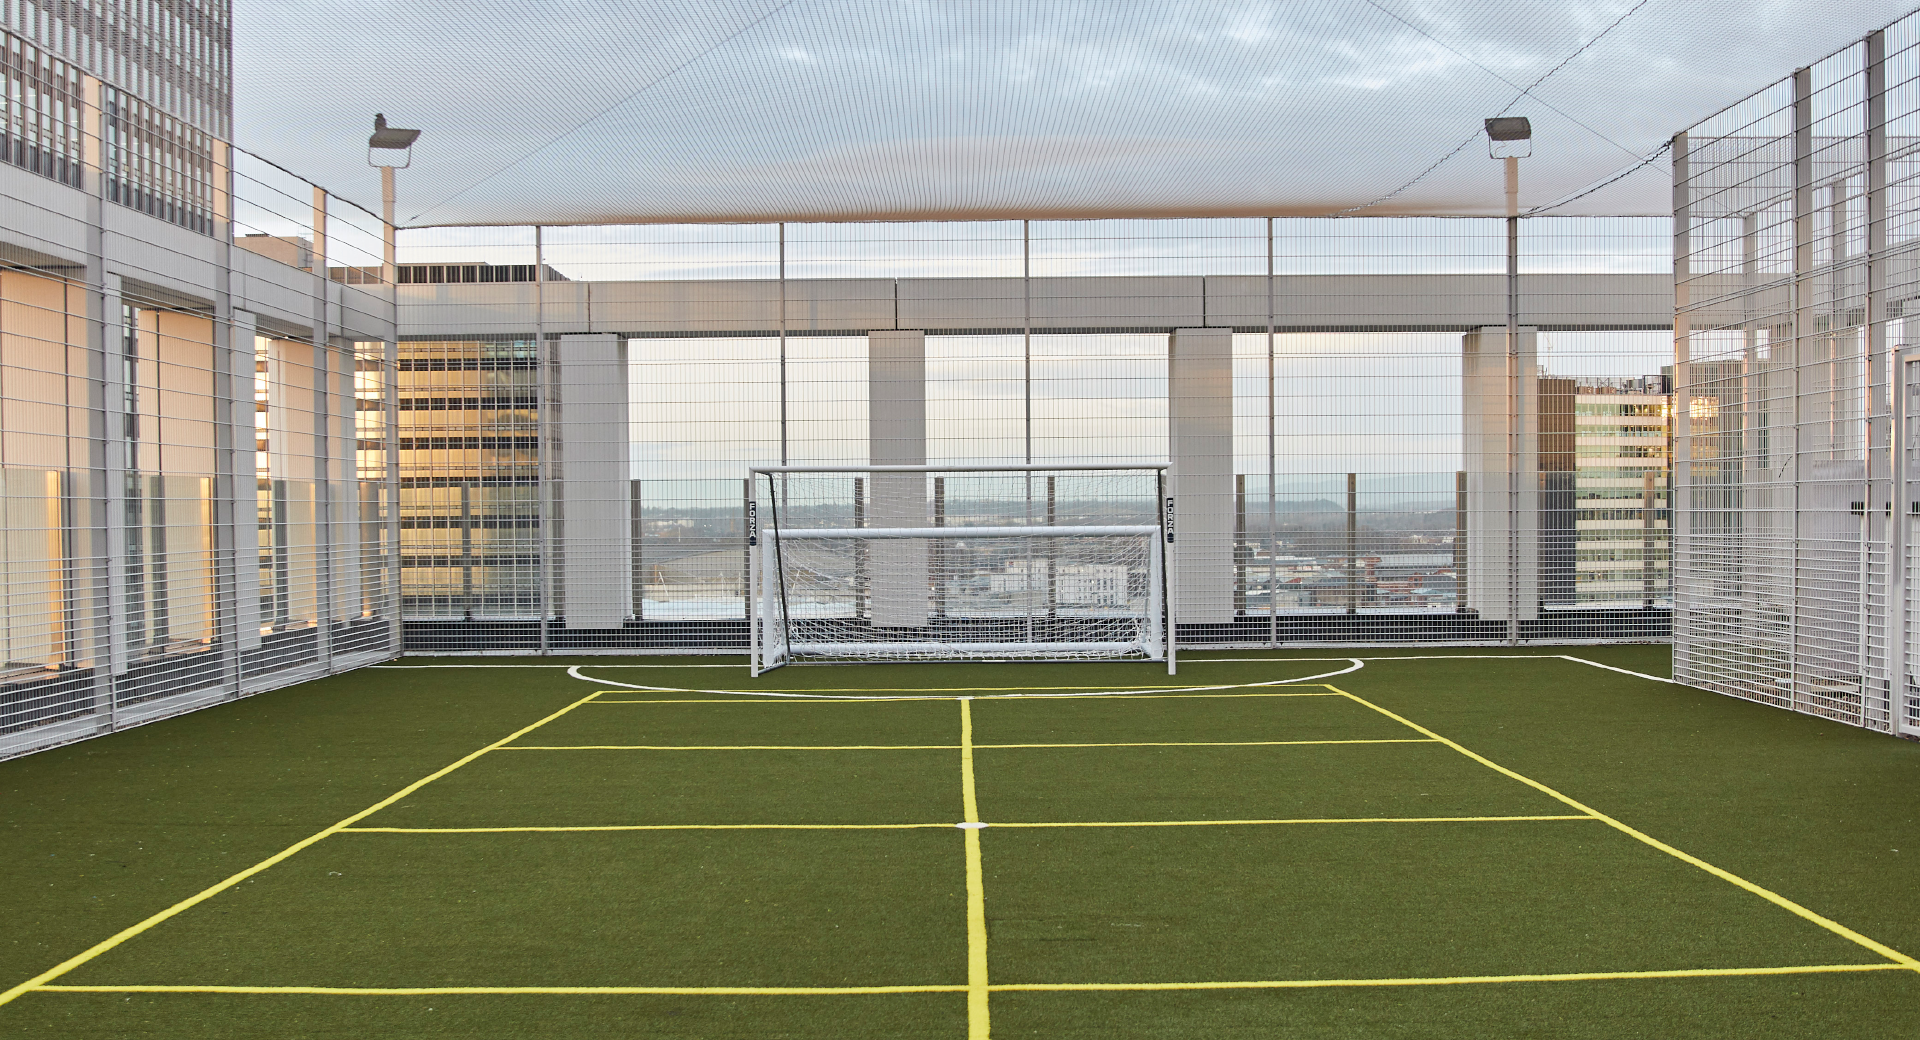 rooftop sports pitch, blue skies and building in background